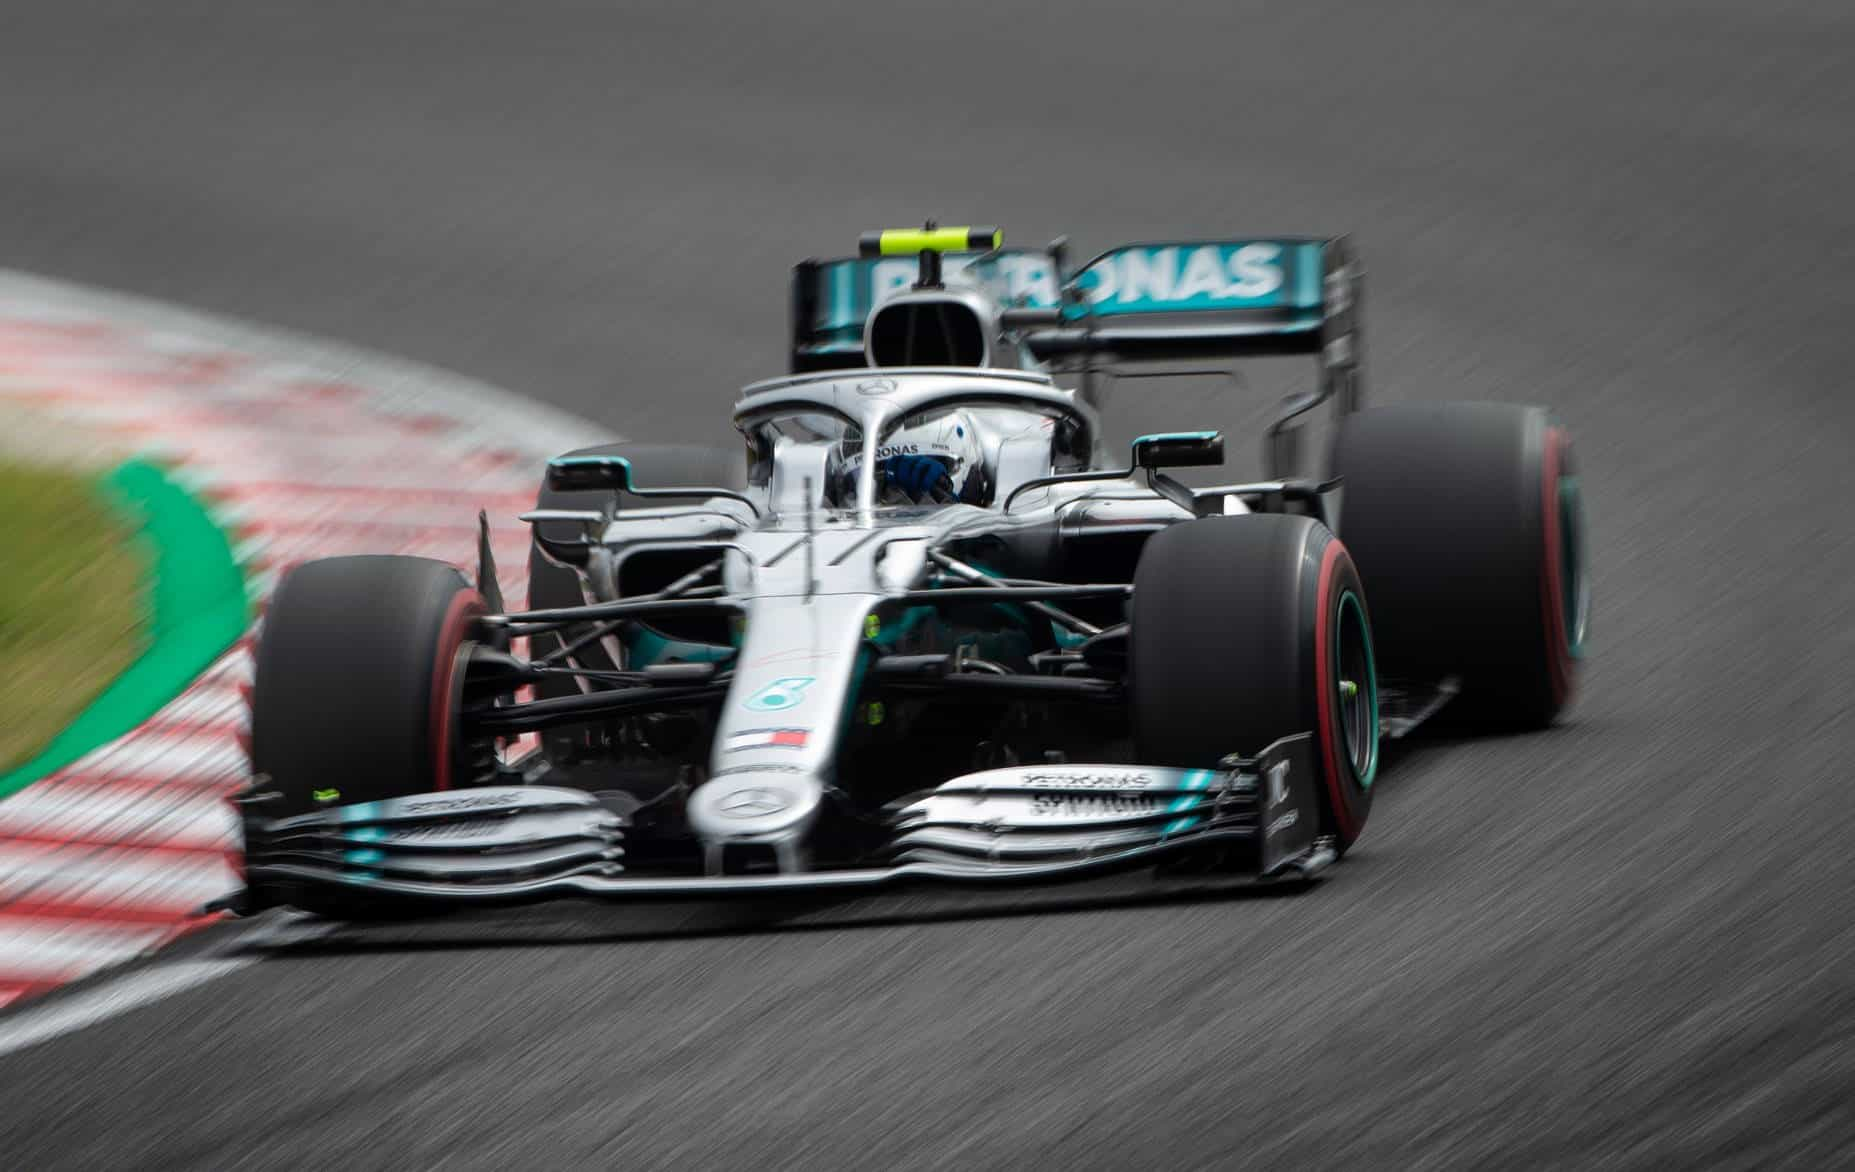 Bottas Mercedes Japanese GP F1 2019 FP1 Photo Daimler